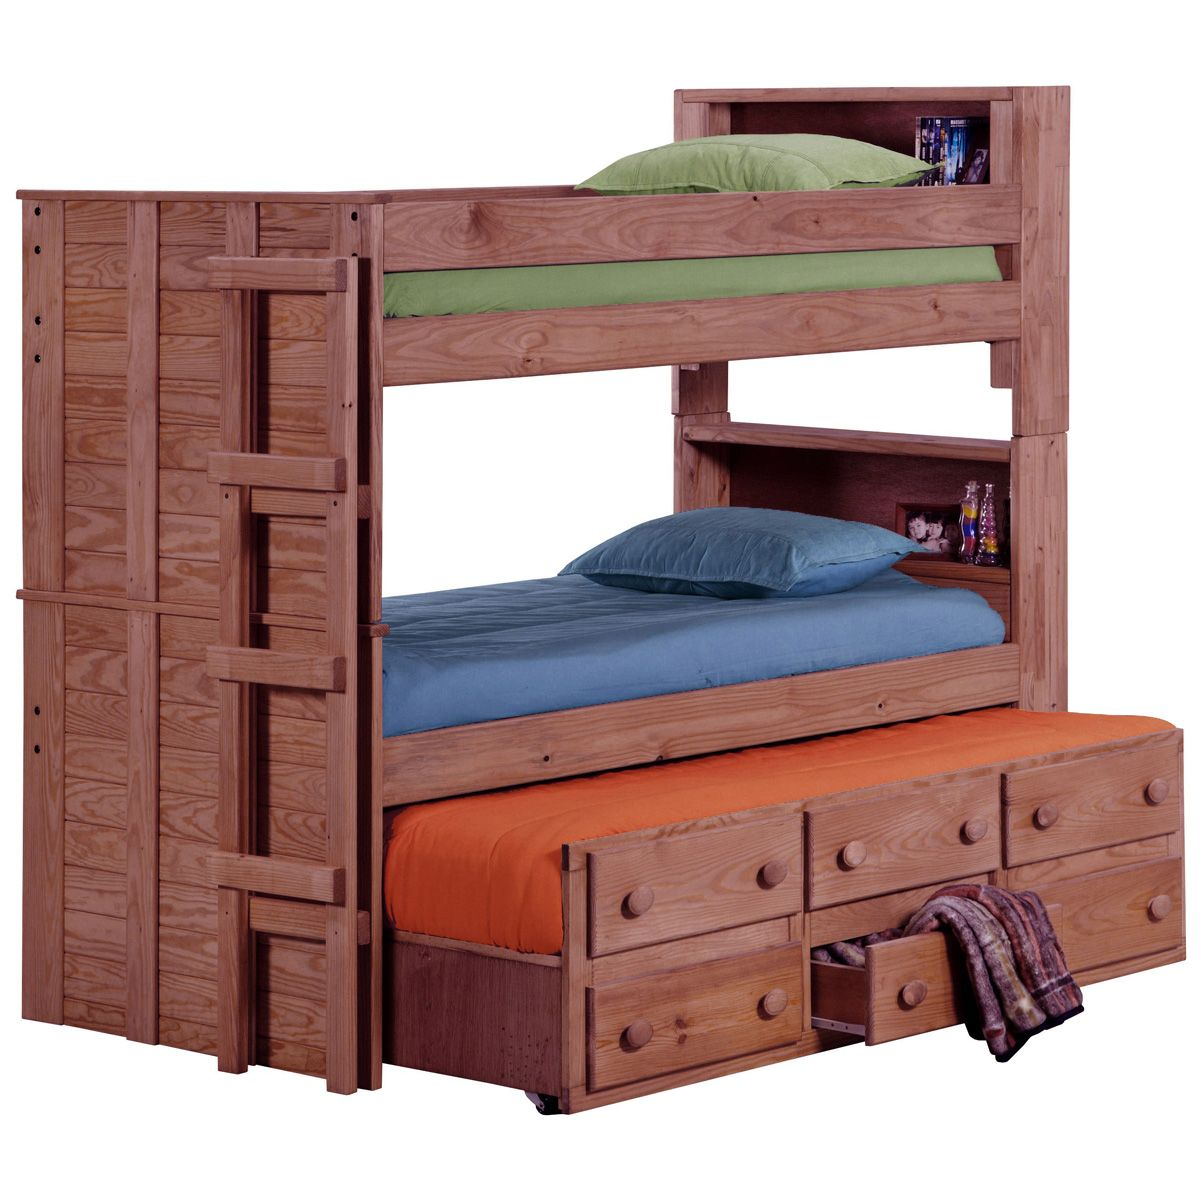 Twin Bunk Bed Bookcase Headboards Trundle Mahogany Finish